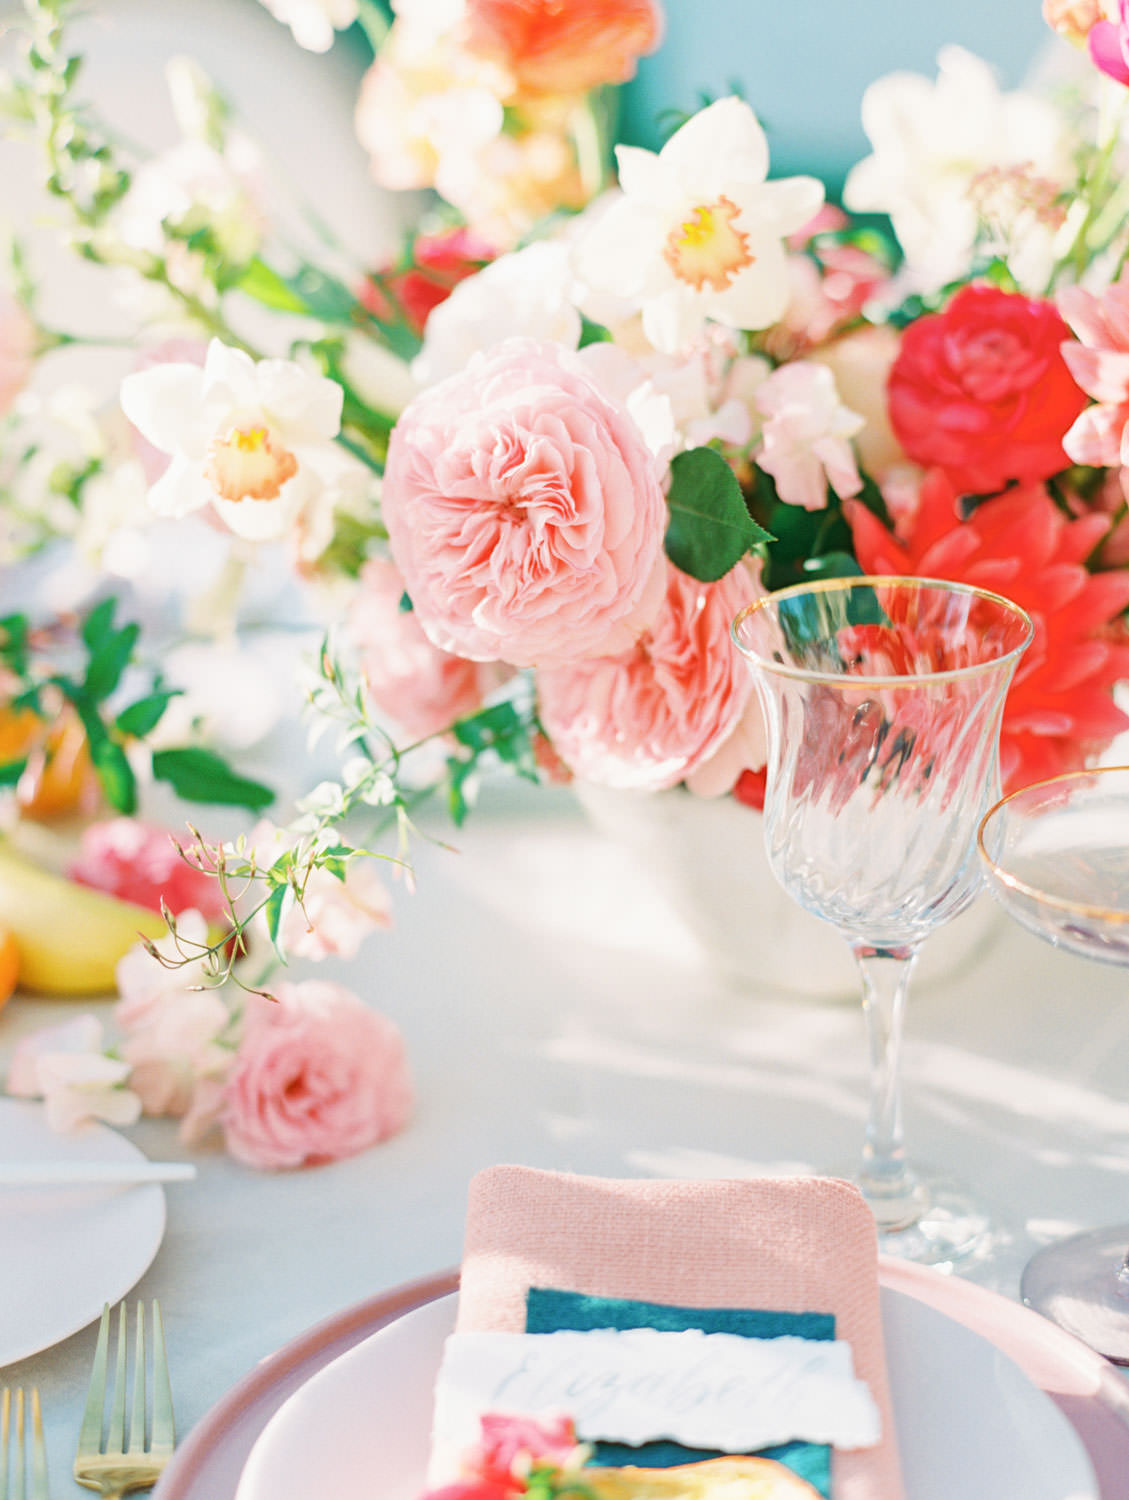 Al fresco reception with table covered in ivory velvet linen. Banana escort card. Mauve charger, soft blush plates, coral napkin with grey cloth square on top and hand torn calligraphy place card. Gold flatware with white handles, pink taper candles in hurricanes, and centerpiece with ivory, peach, pink, yellow, and green roses, ranunculus, daffodils, sweet peas, and peonies.. A Wedding Photographer's Fairmont Grand Del Mar Wedding